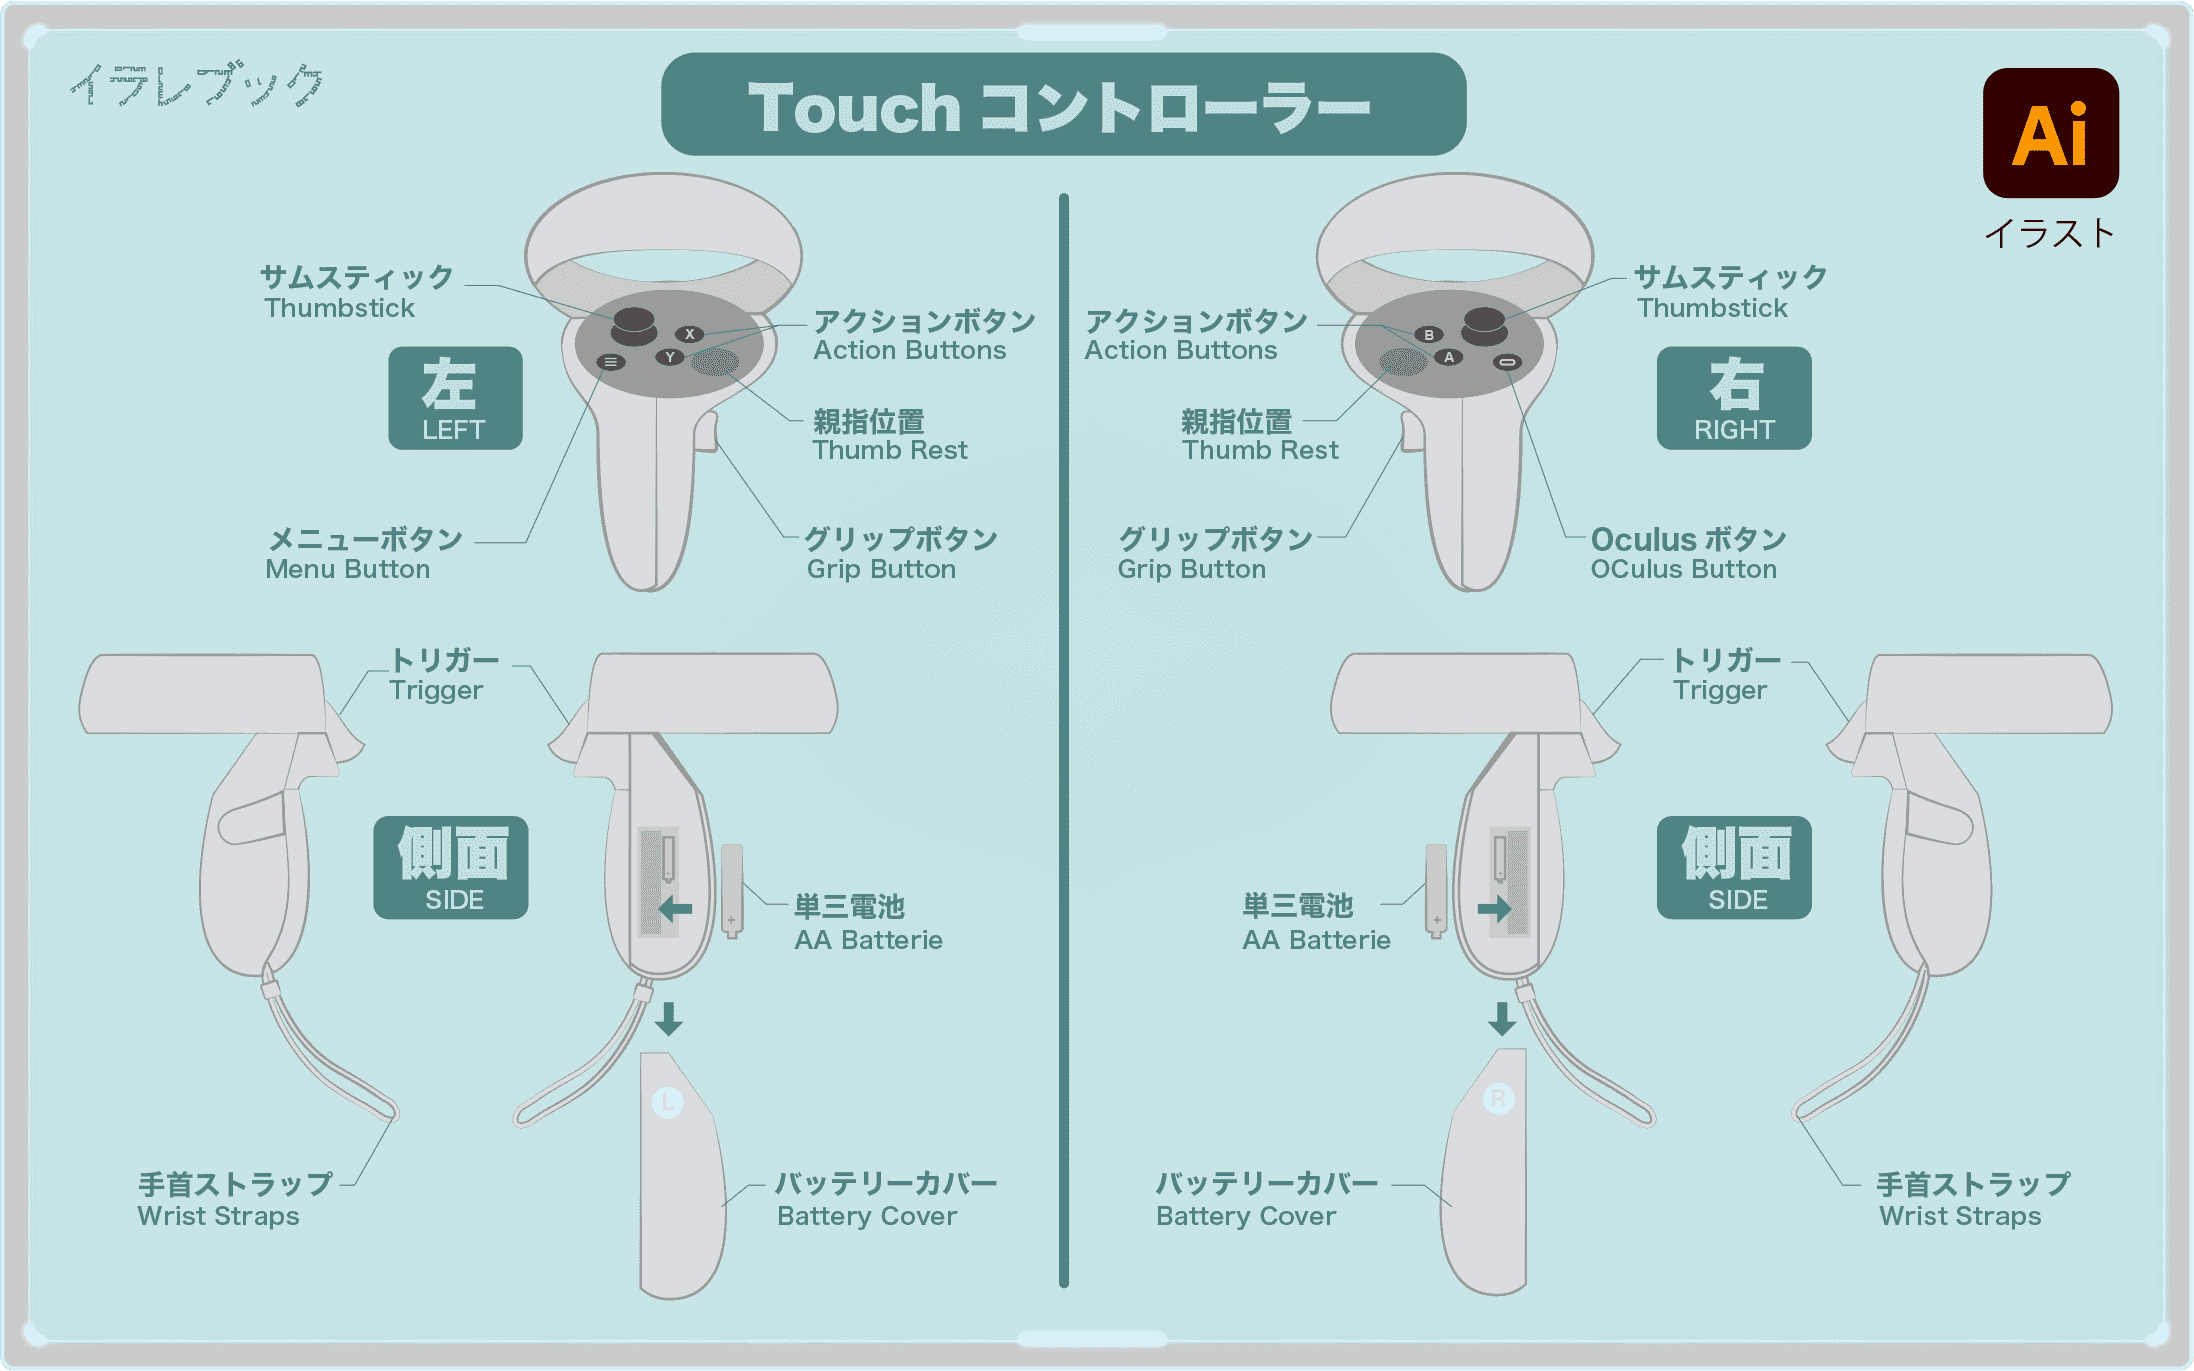 Touchコントローラーの各部名称